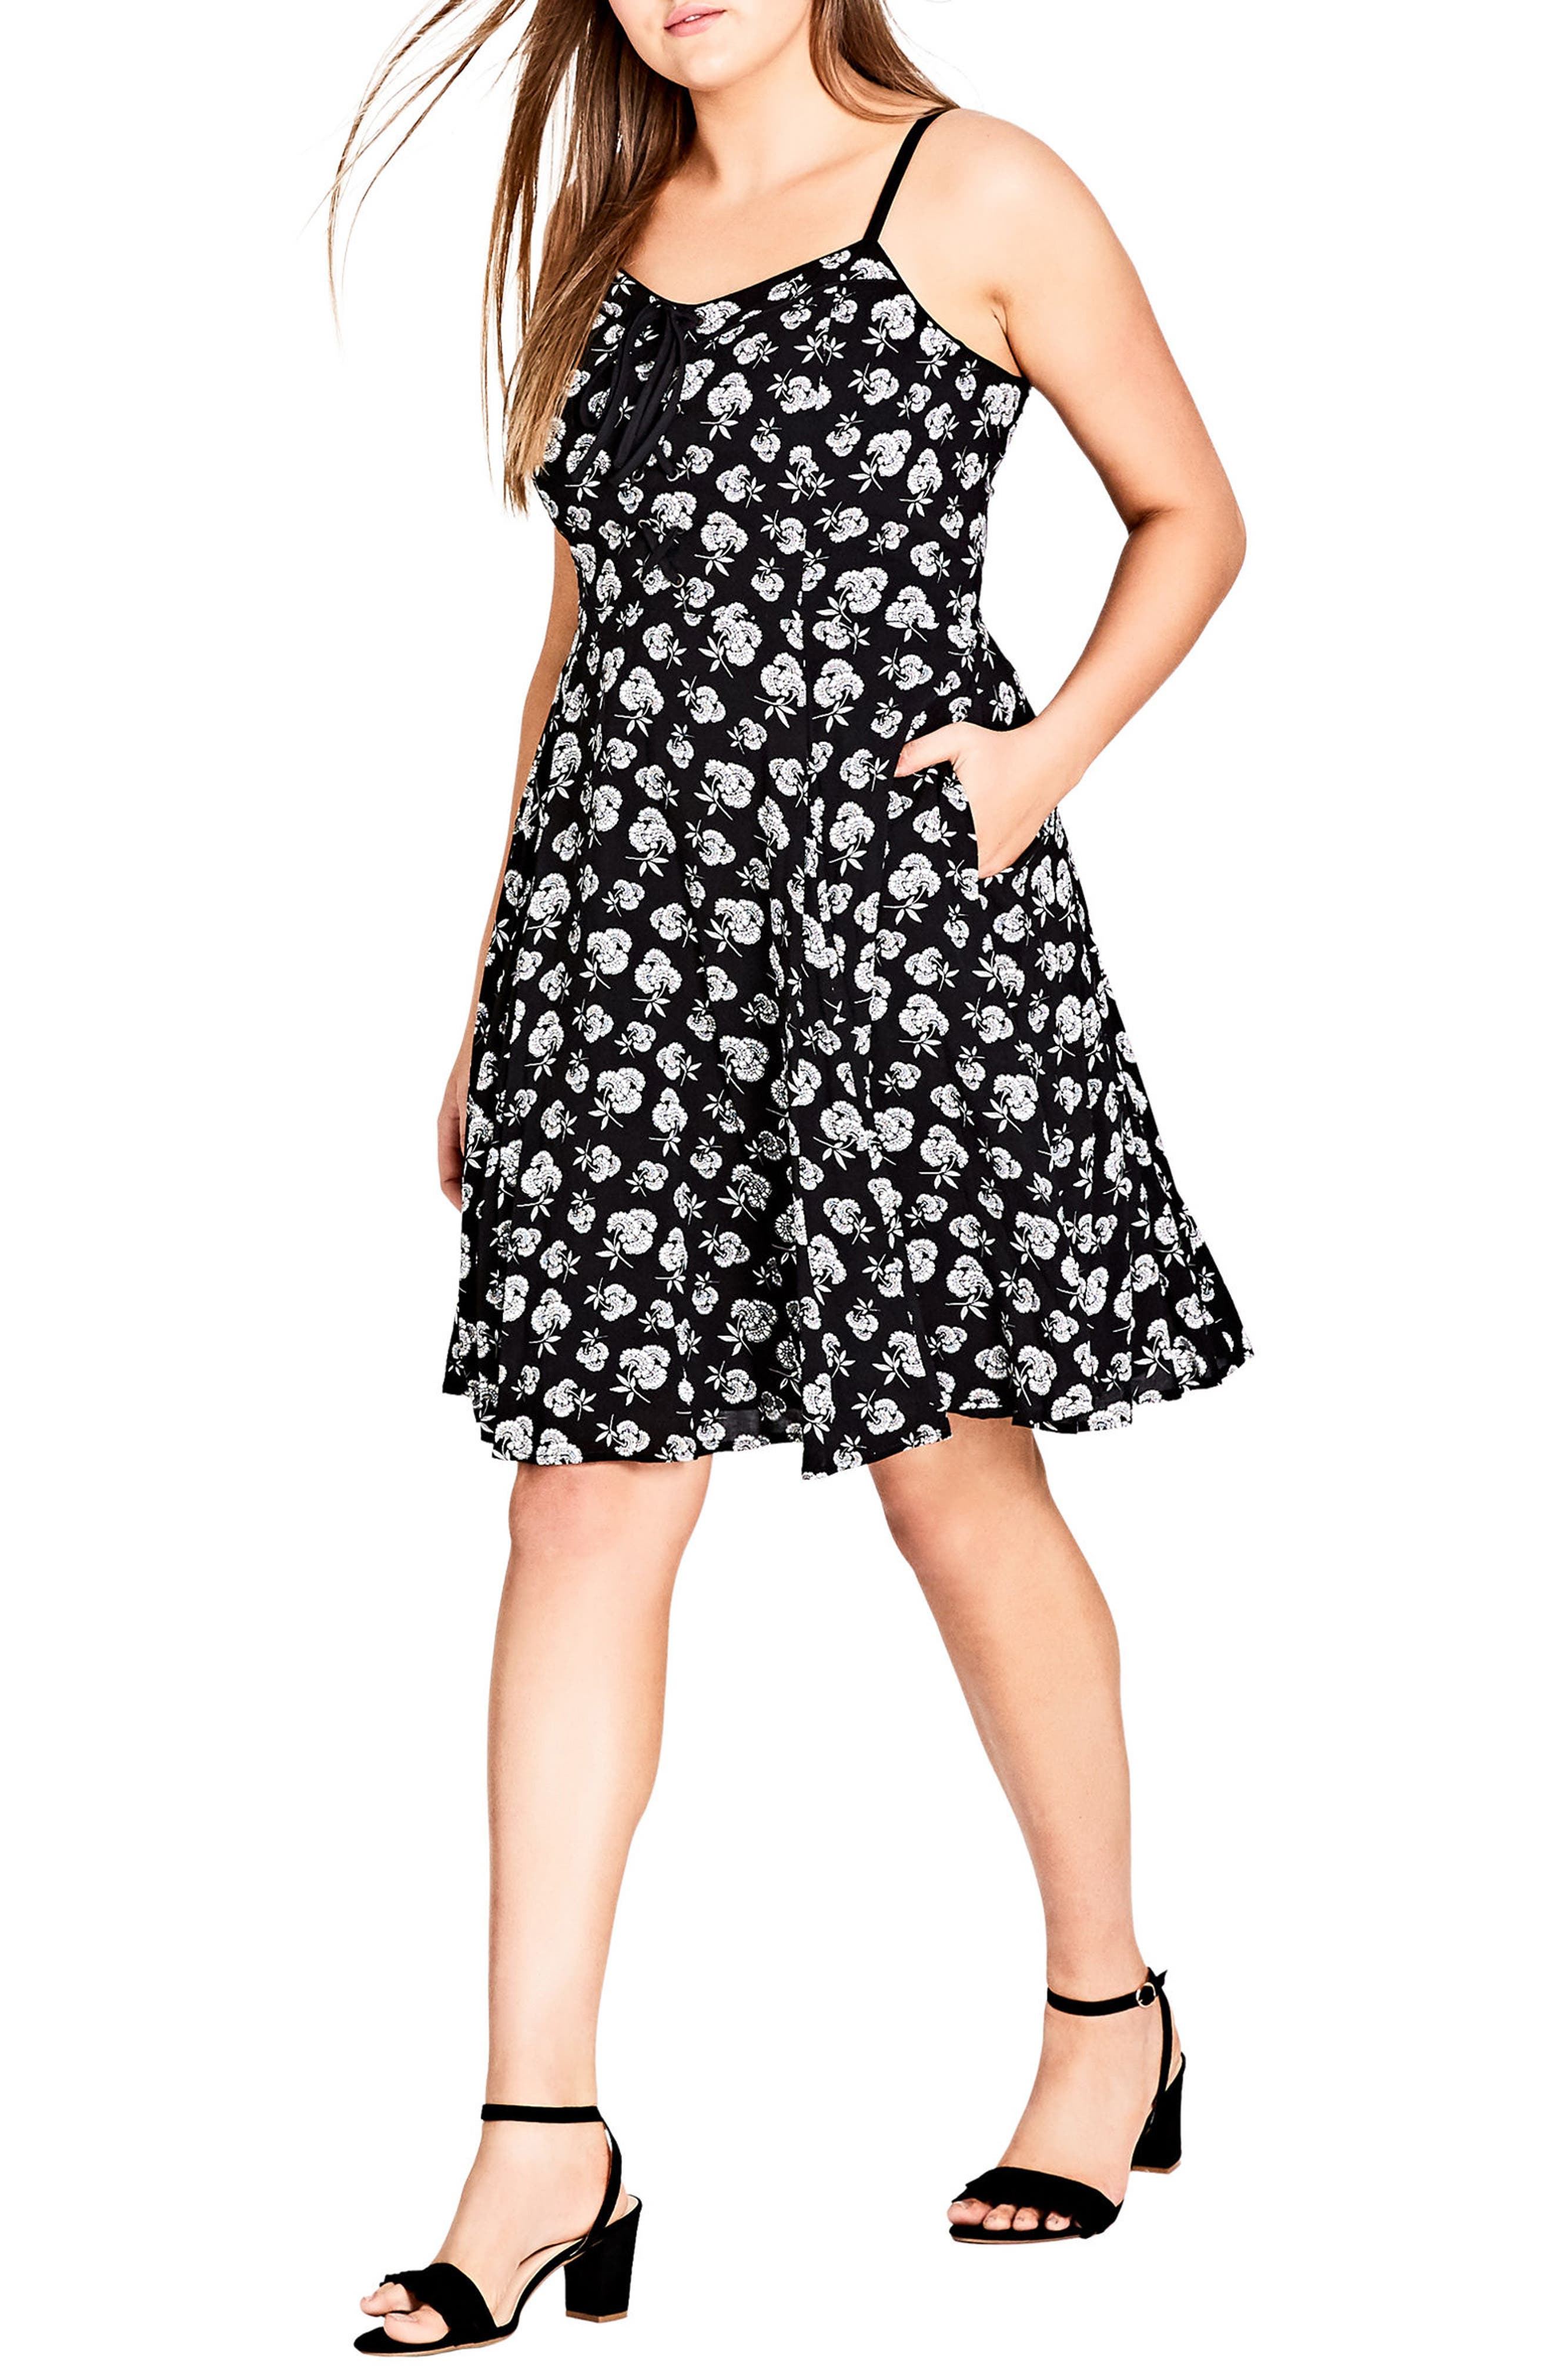 Deco Floral A-Line Dress,                         Main,                         color, 003